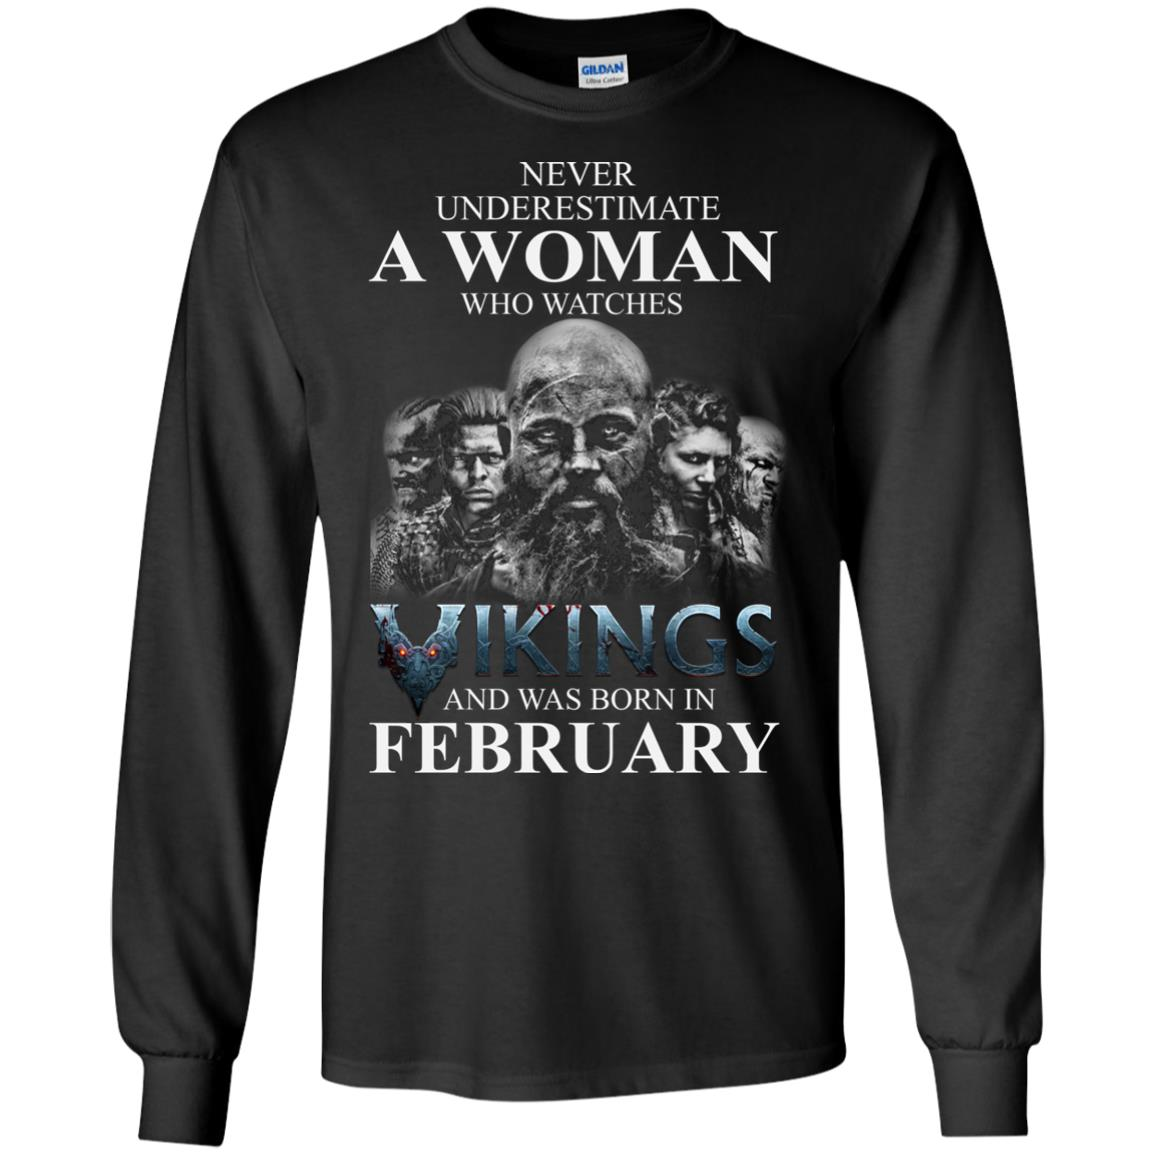 image 1341 - Never Underestimate A woman who watches Vikings and was born in February shirt